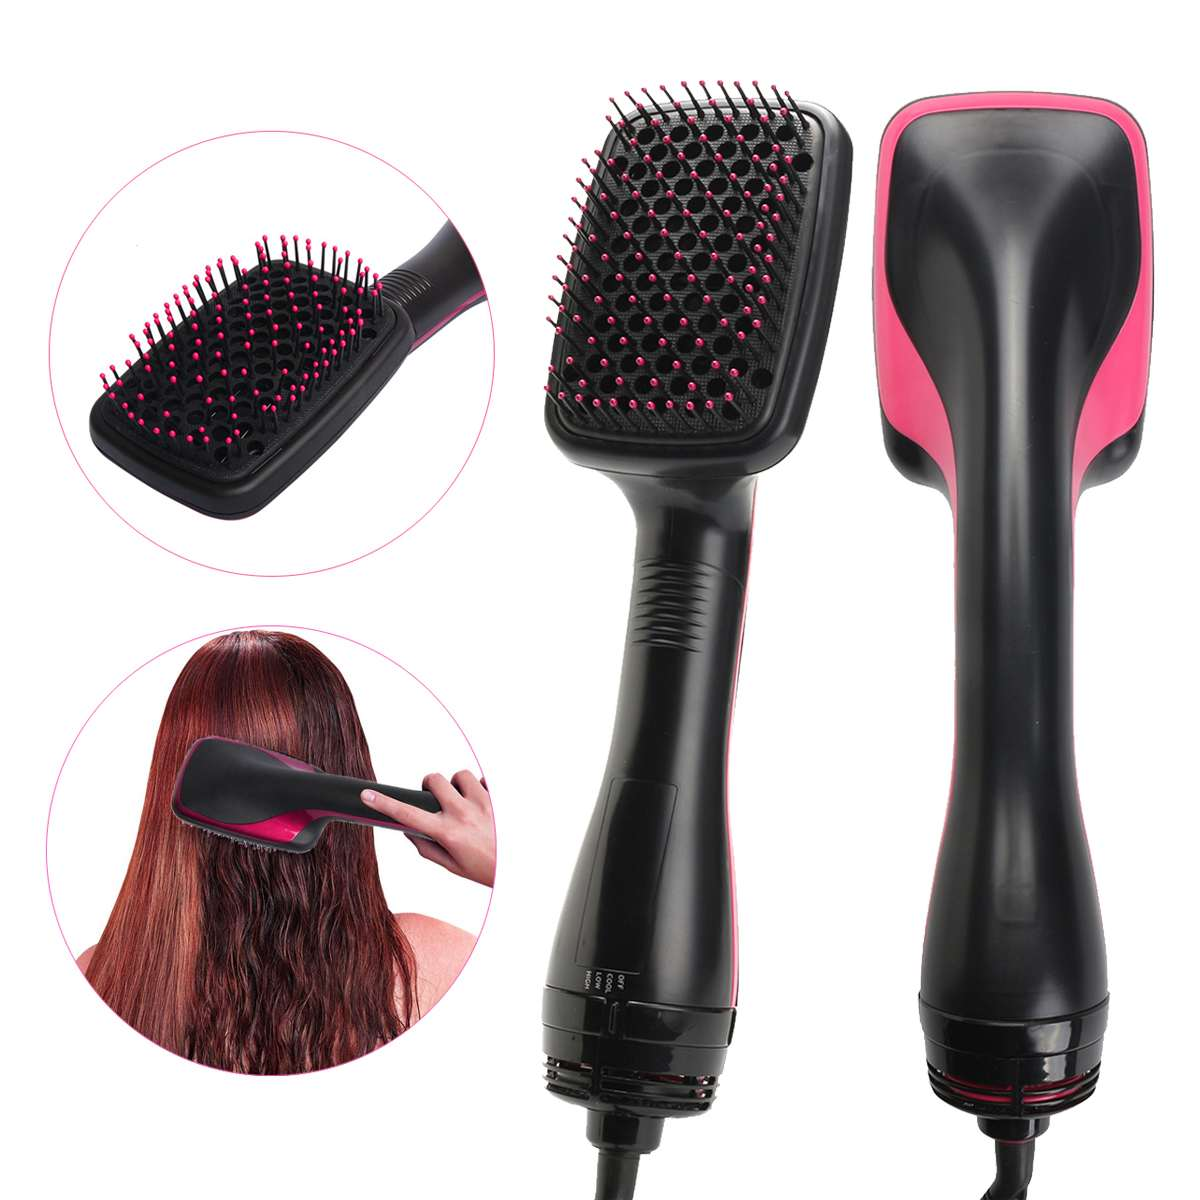 2 in 1 Ionic Conditioning Hair Styler Comb Brush 1000W Smoothing Hair Dryer Paddle Brush Comb Salon Beauty Hair Care Style Tool2 in 1 Ionic Conditioning Hair Styler Comb Brush 1000W Smoothing Hair Dryer Paddle Brush Comb Salon Beauty Hair Care Style Tool